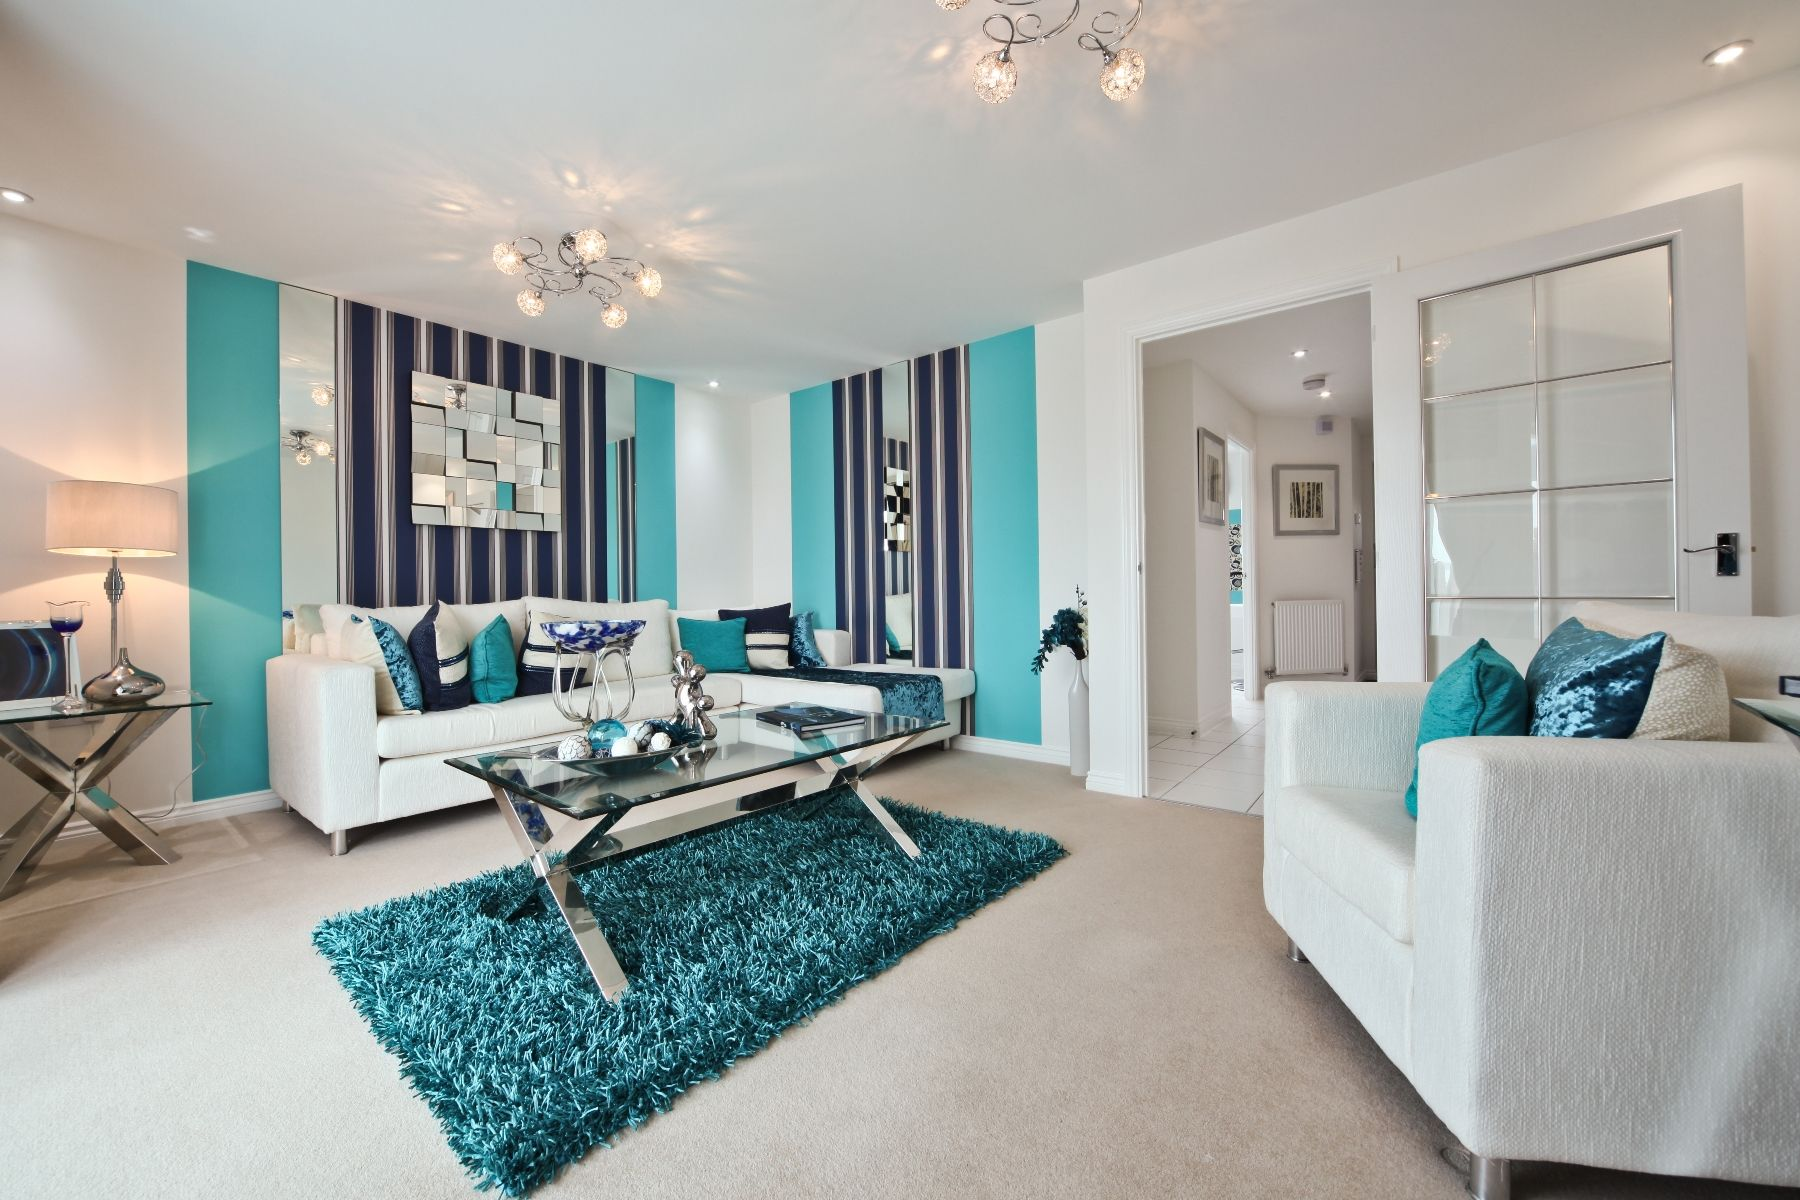 Cornflowers at Cranbrook Flatford example living room